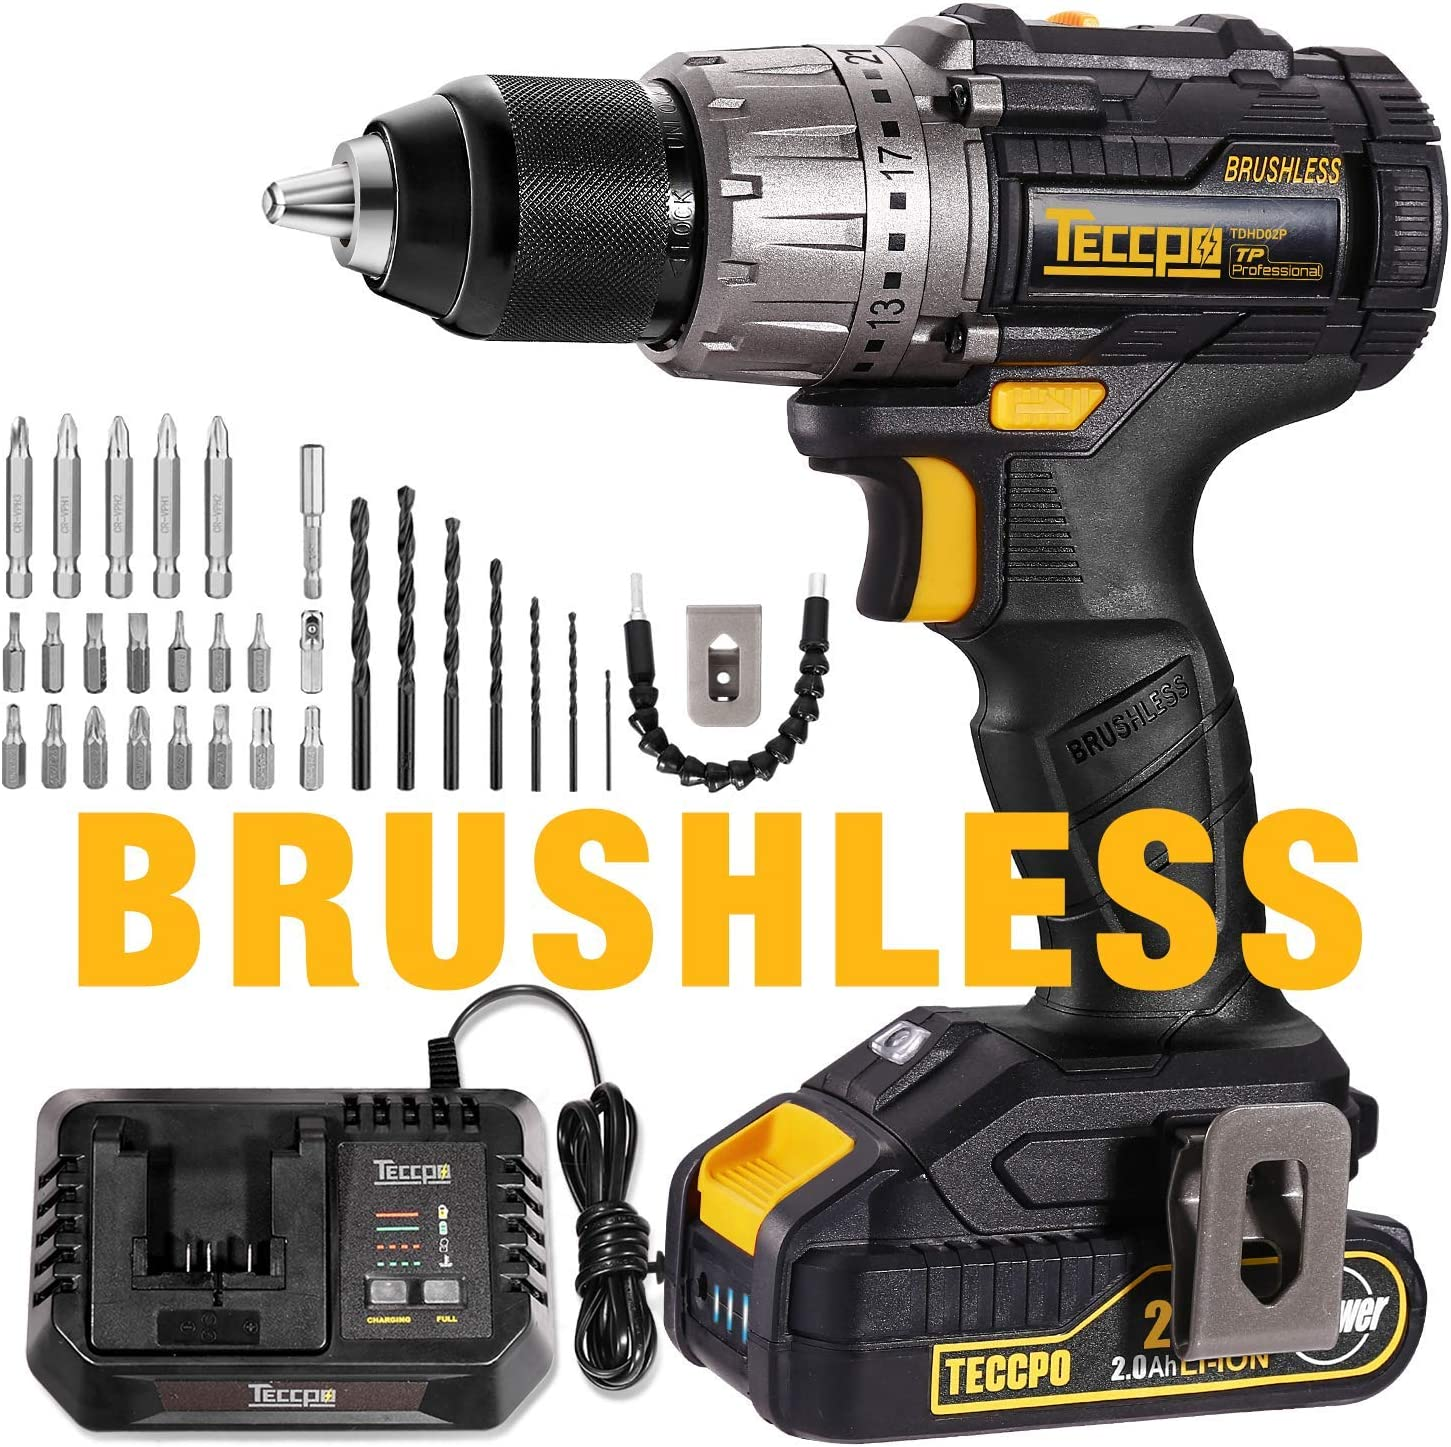 Brushless Drill Driver, 20V MAX TECCPO 530 In-lbs Compact Cordless Drill, 30mins Fast Charger 4.0A, 2.0Ah Li-ion Battery, 21 1 Torque Setting, LED Light, 29pcs Accessories – TDHD02P